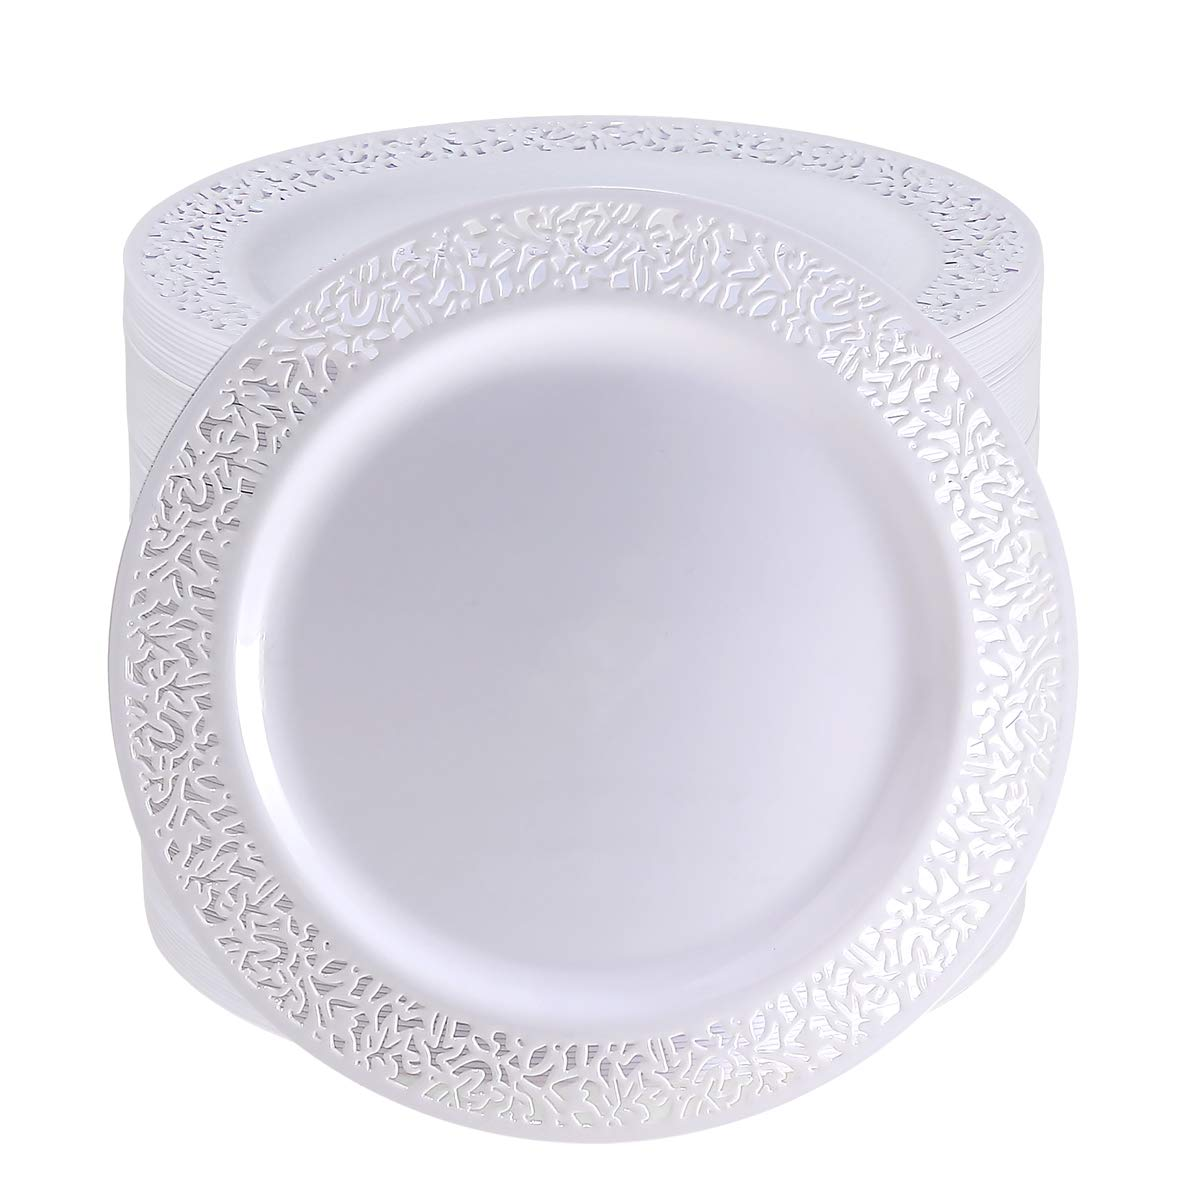 102 Pack 9 Inch White Plastic Lunch Plates, Premium Quality Round Disposable Plates for Dinner, Washable and Reusable Party Wedding Plates by I00000